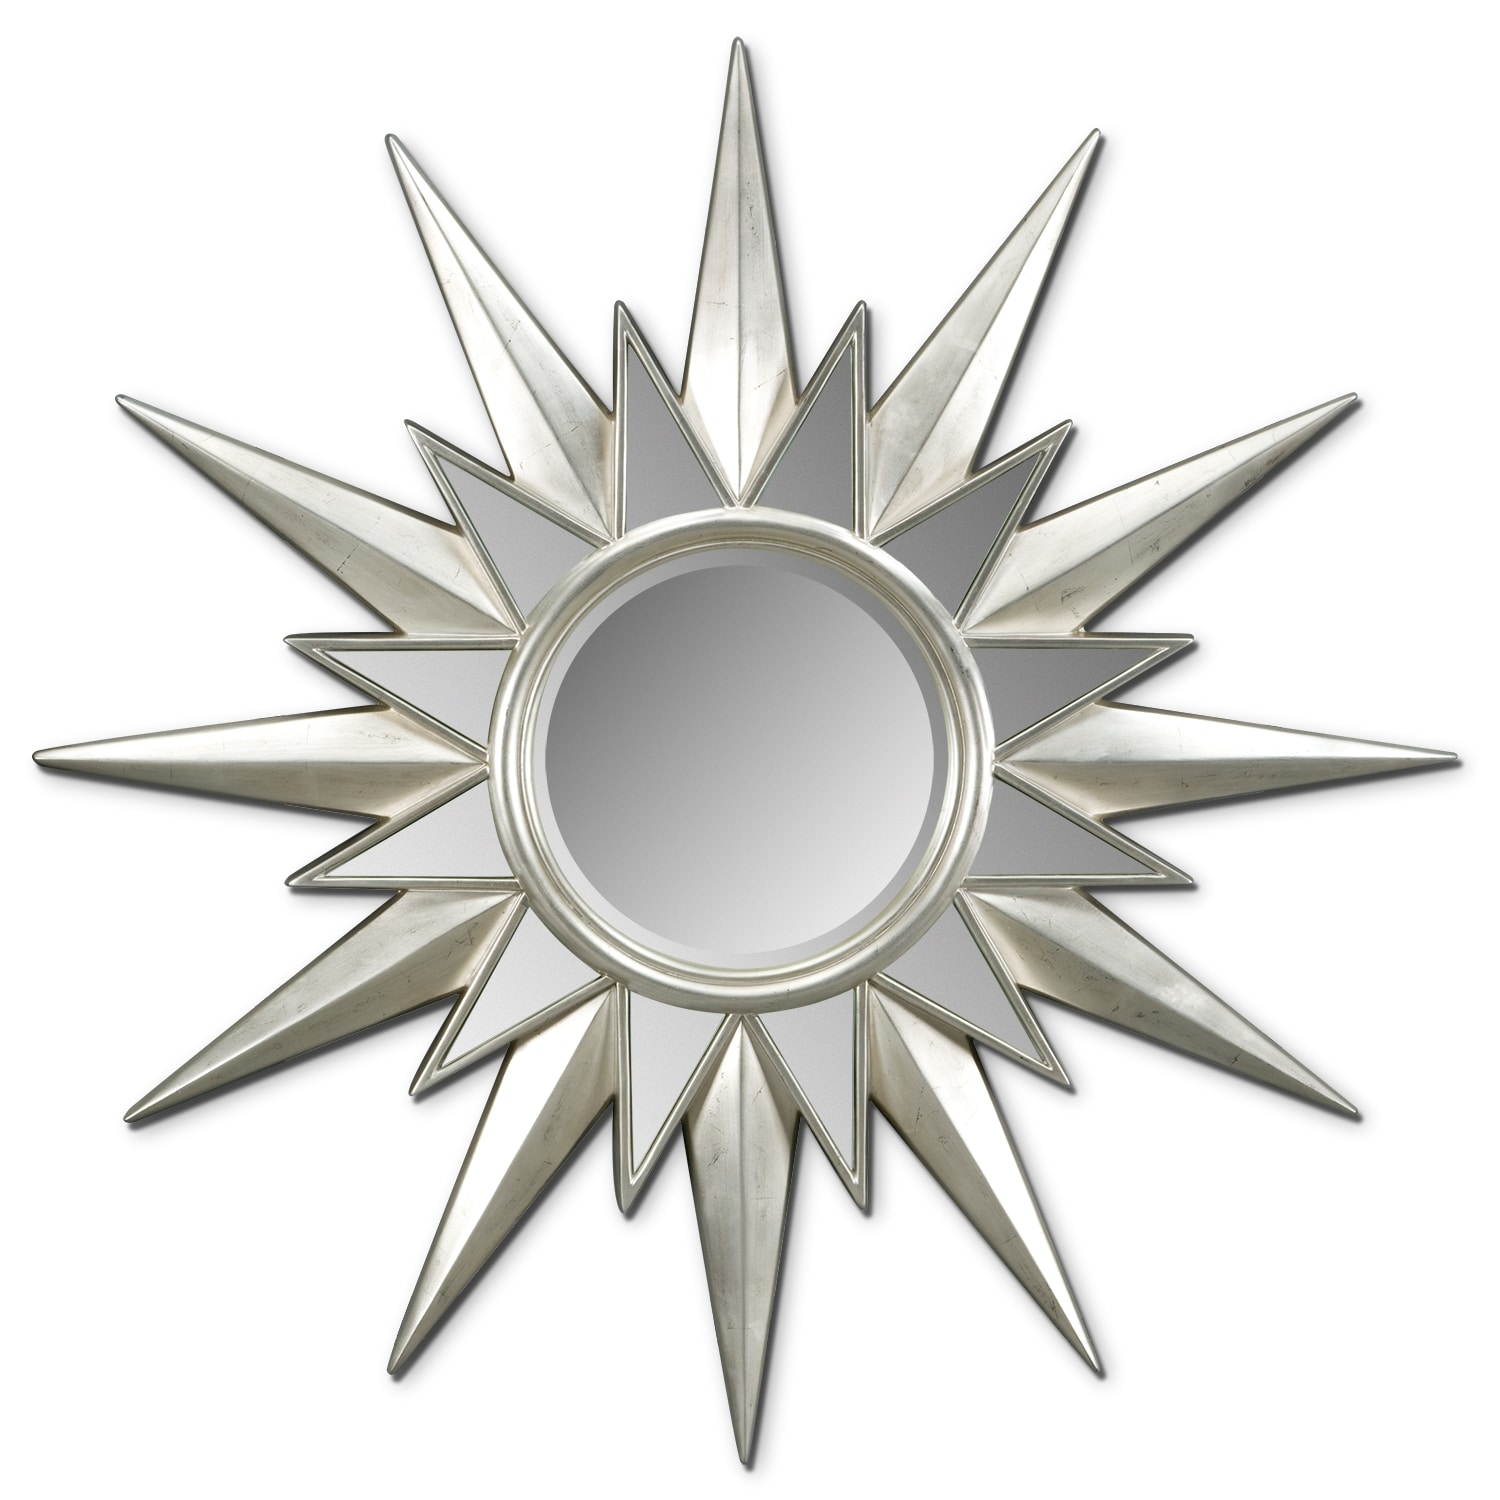 Home Accessories - Starburst Mirror - Silver Leaf